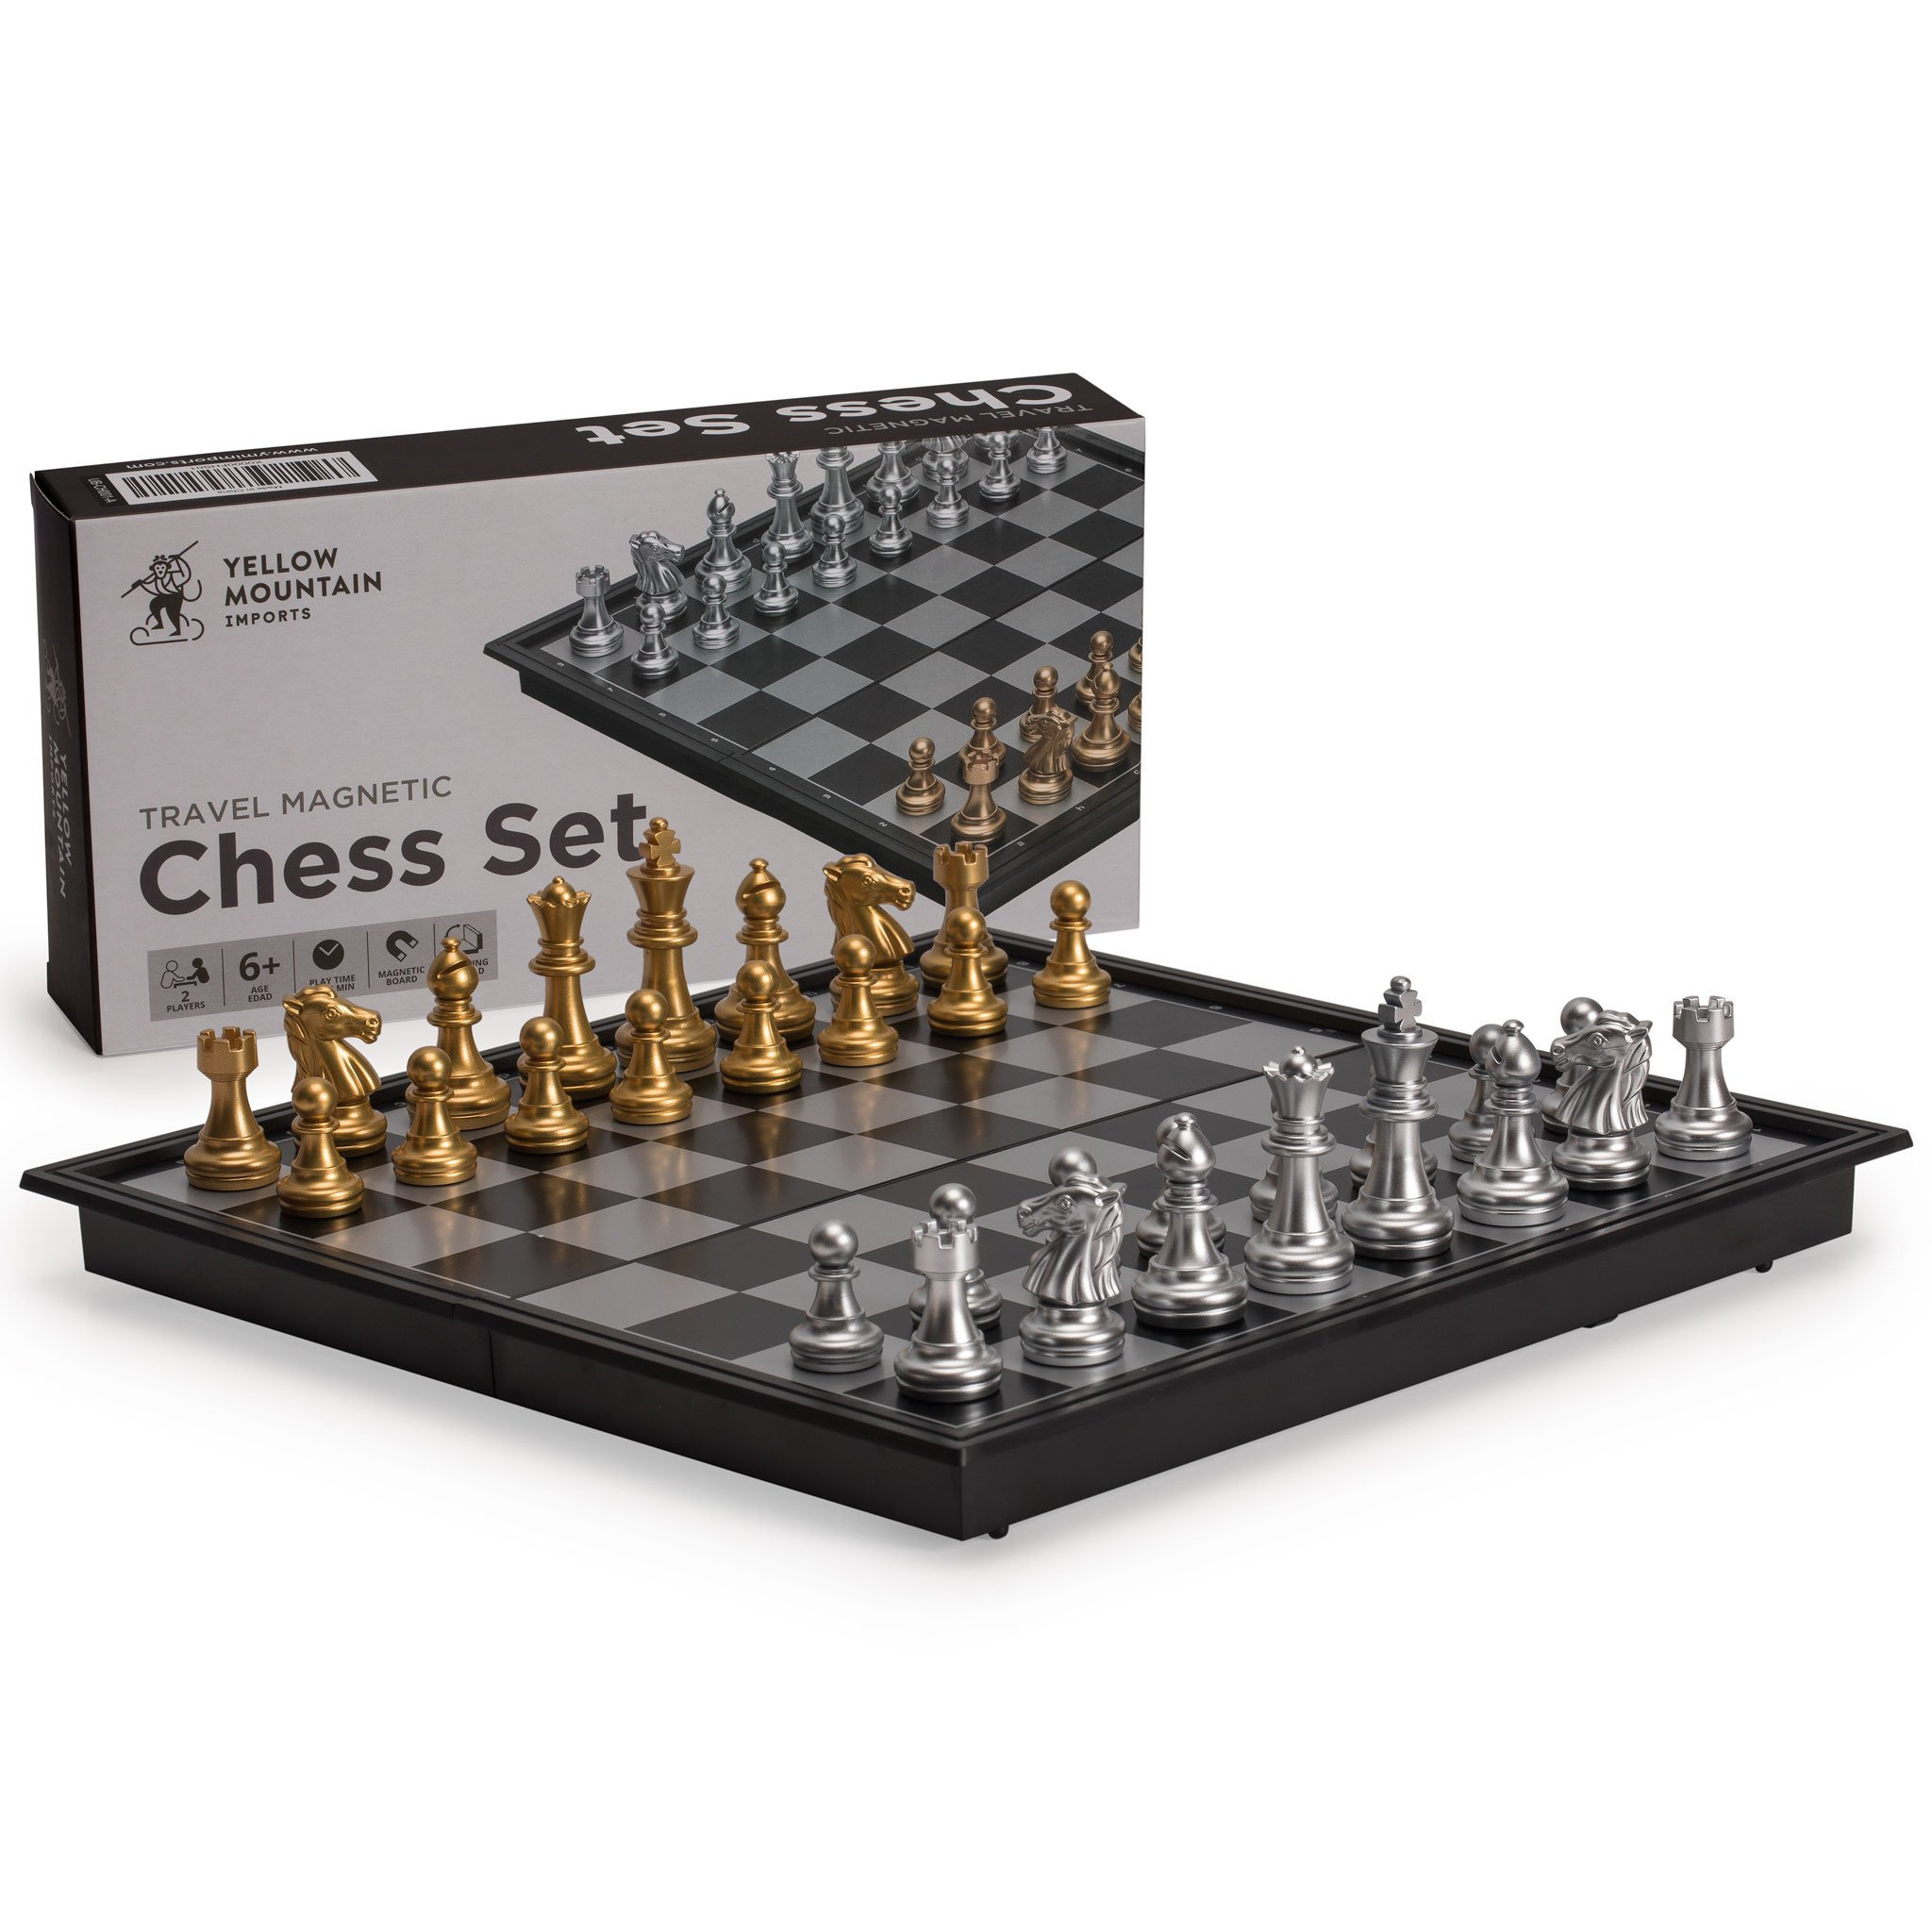 Yellow Mountain Imports Magnetic Travel Chess Set (9.7 Inches) - Portable - Perfectly Travel-Sized - Complete Playing Pieces Included in Set